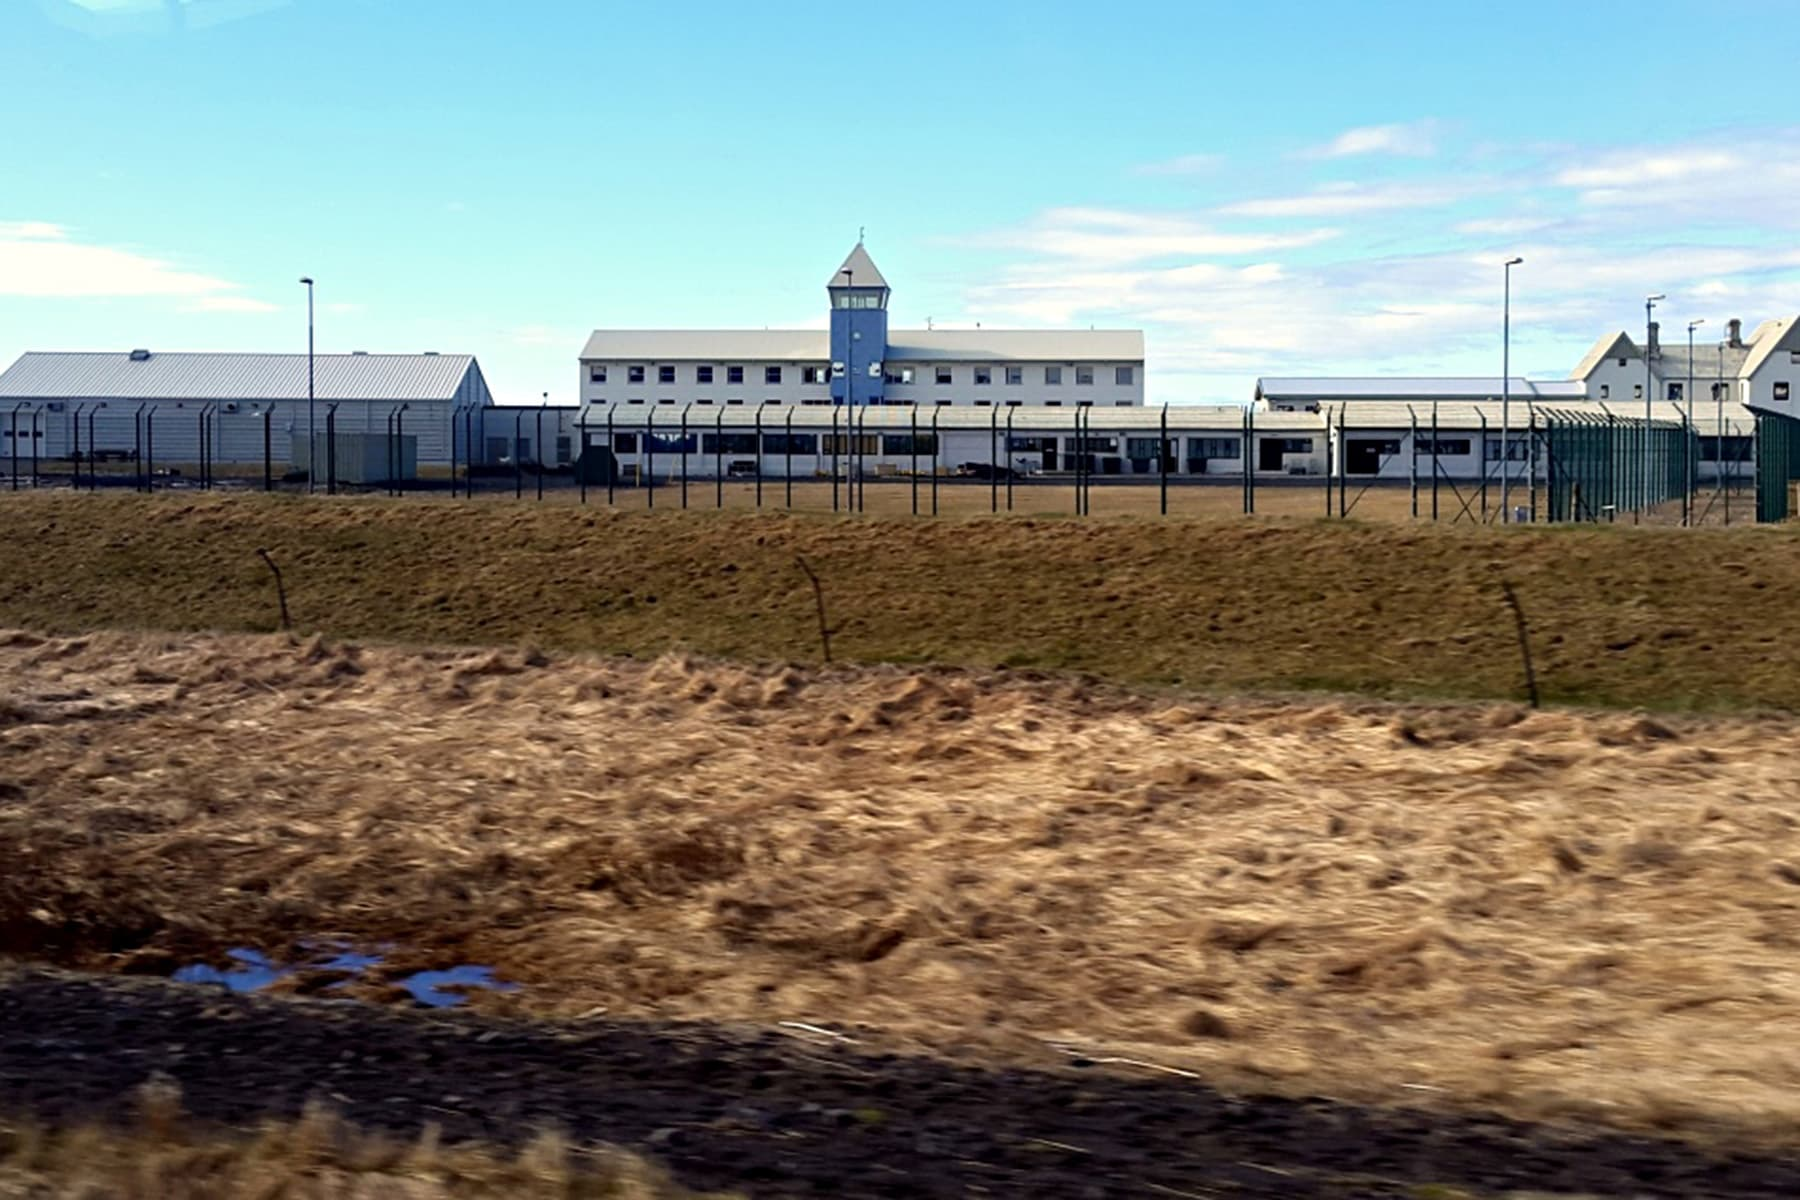 Litla-Hraun is Iceland's oldest prison formed in 1929. There are reportedly 150 prisoners in Iceland's prisons. Some can have a waitlist of up to 5 years.